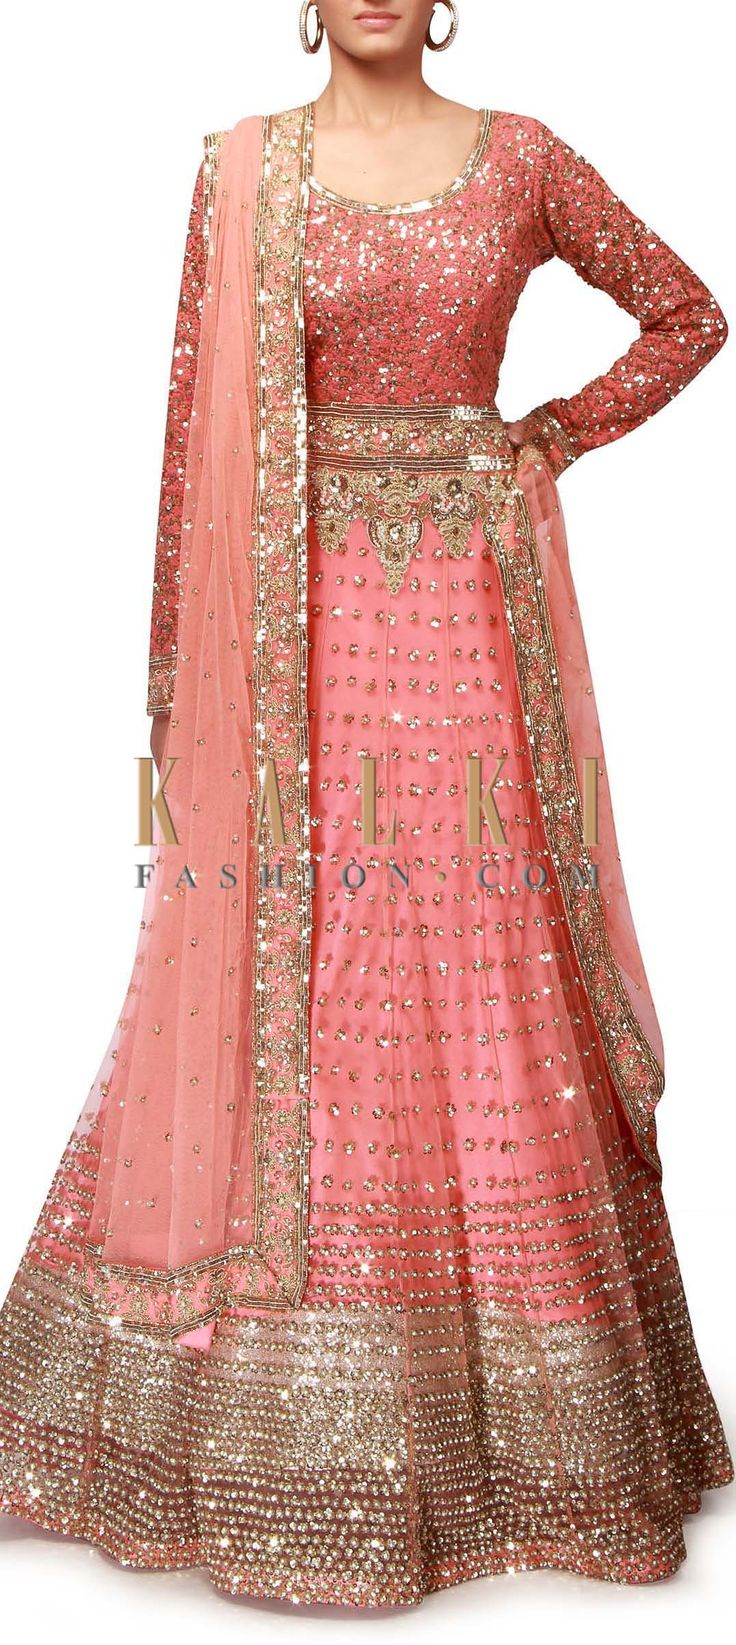 Latest Lehenga Choli Trends & Designs Collection 2016-2017 (28)